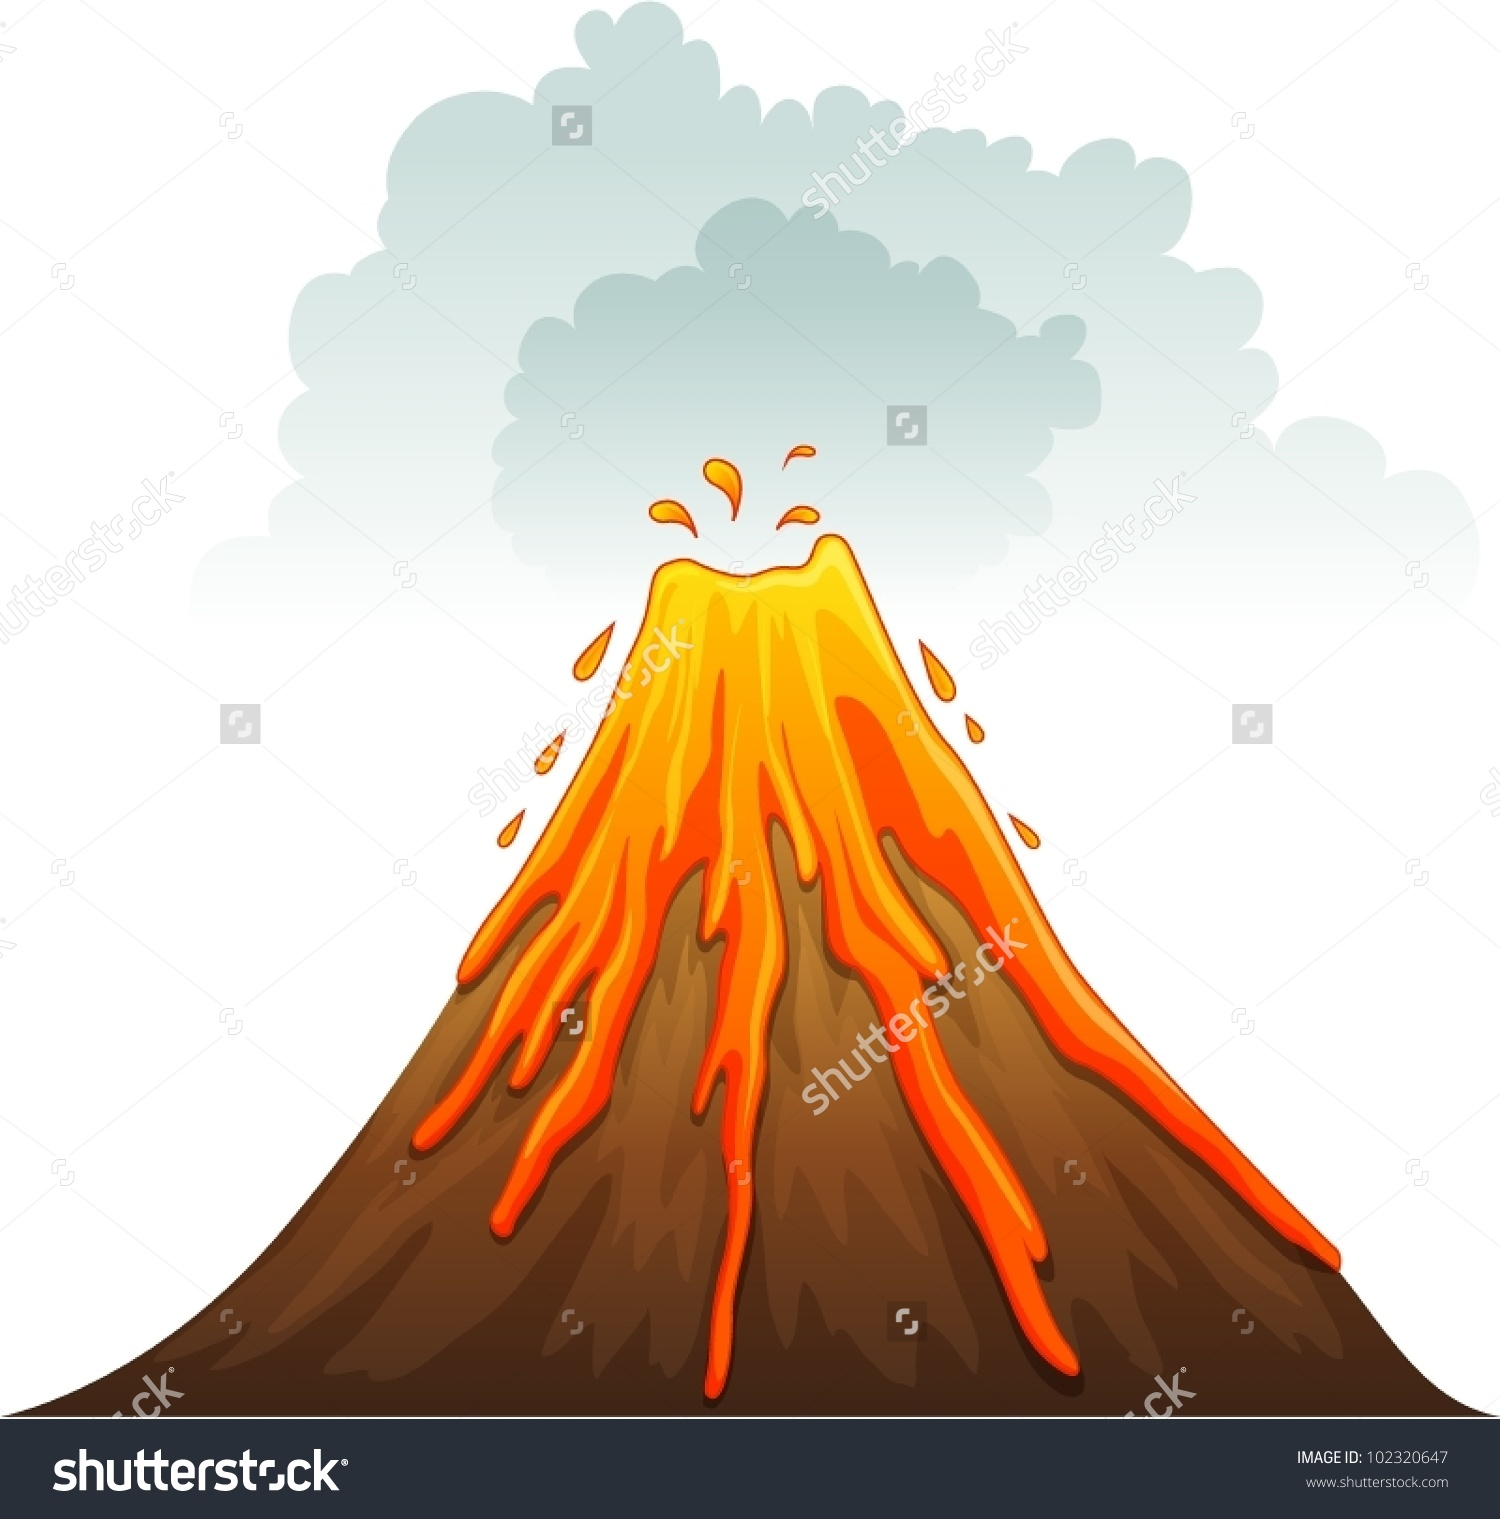 Island Volcano Eruption clipart #13, Download drawings